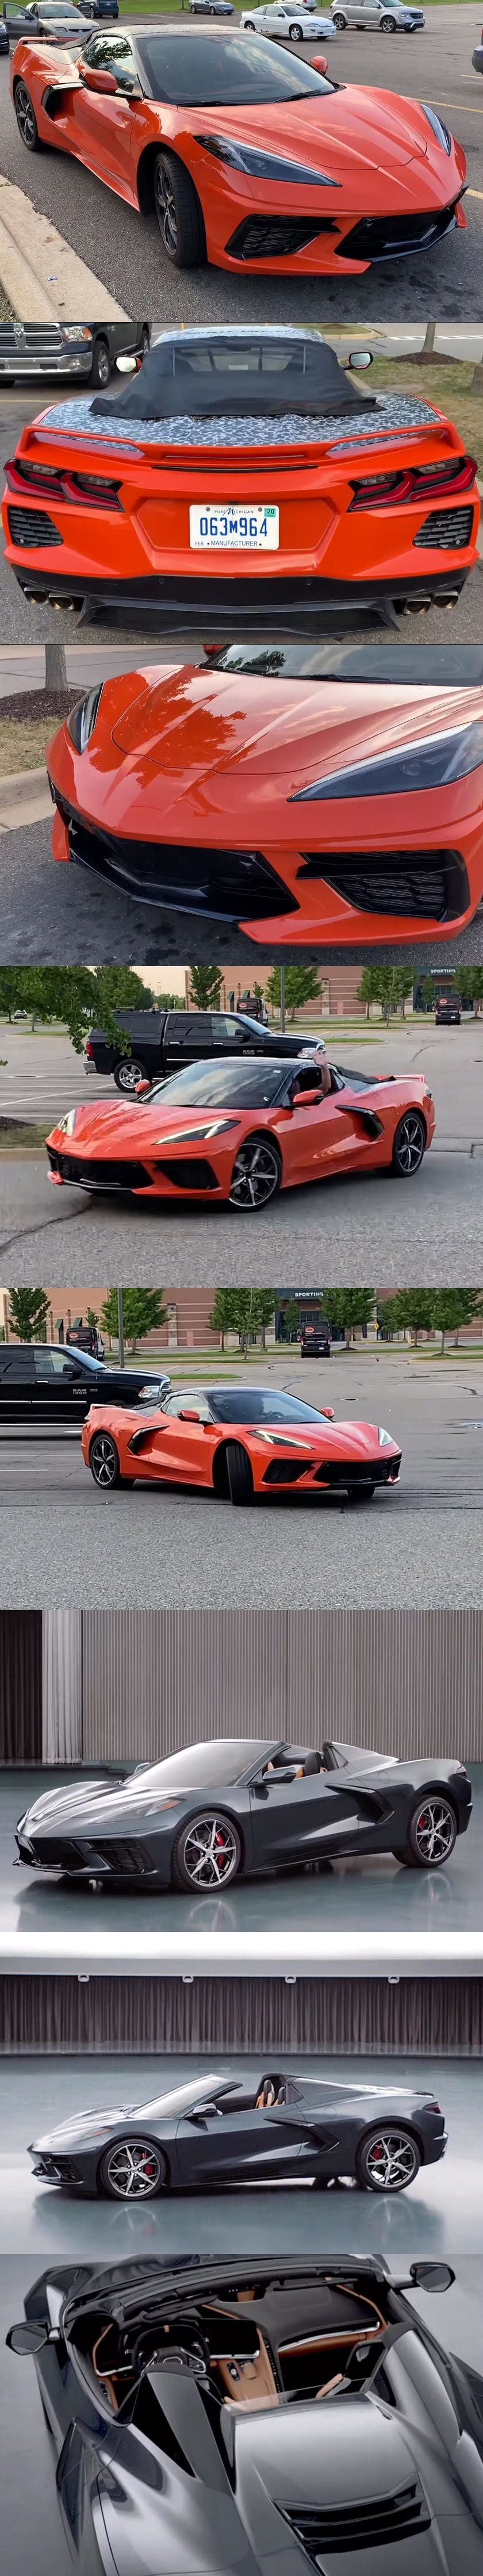 2020 Chevrolet Corvette C8 Convertible Caught On Video Wait Until You Find Out How Fast It Allegedly Accelerates Chevrolet Corvette Corvette Chevrolet